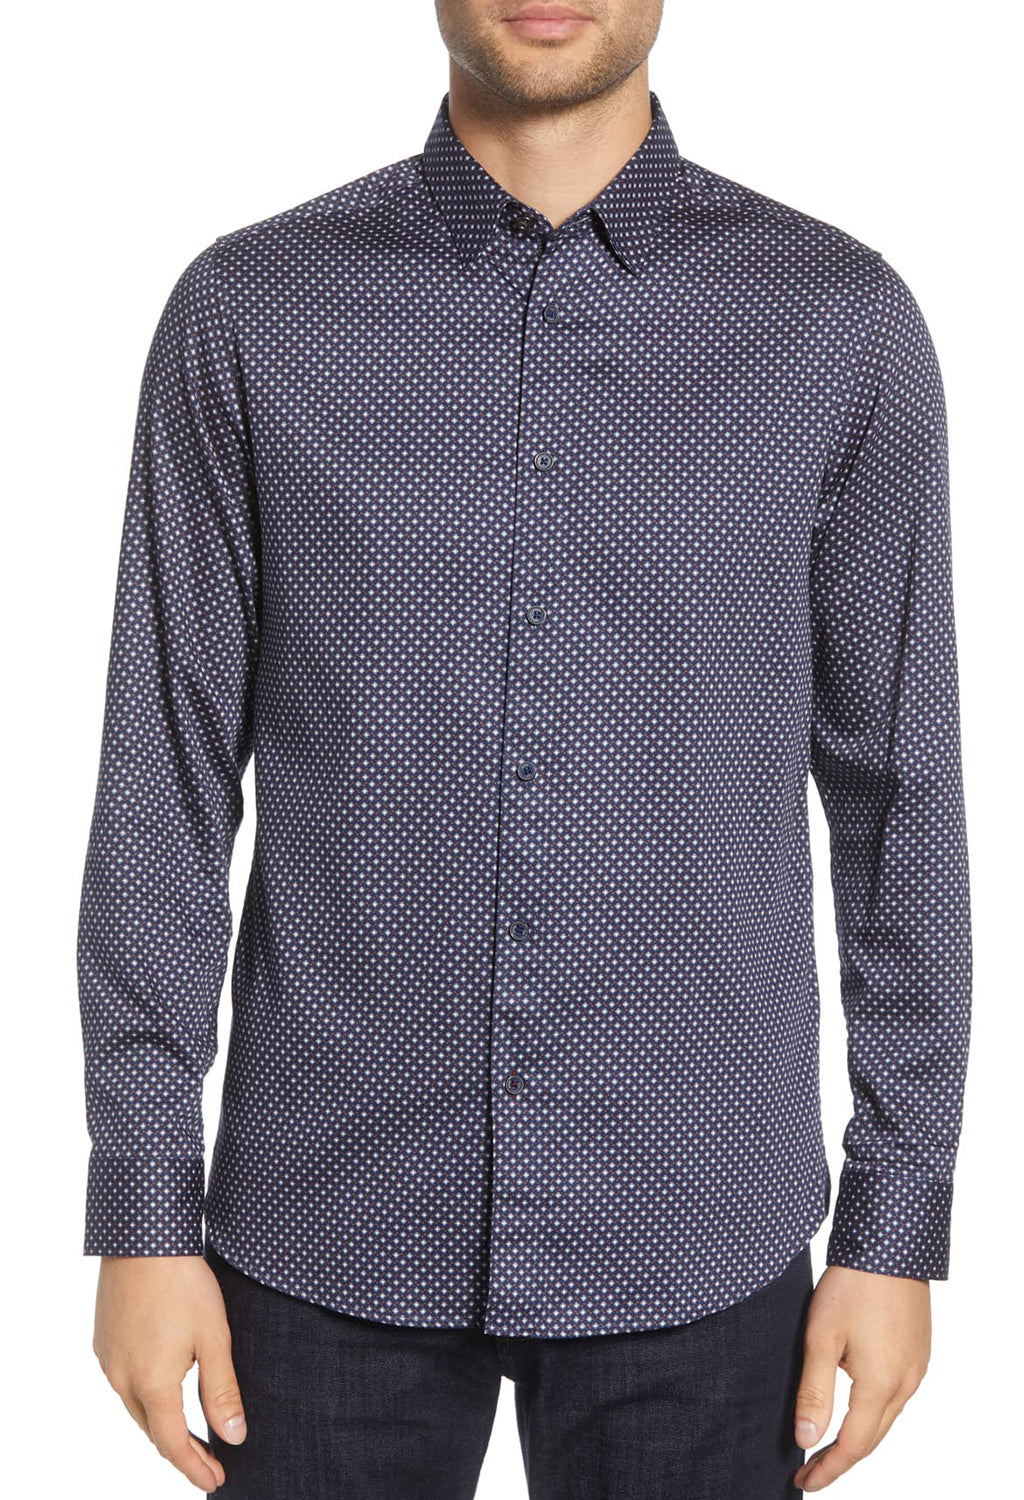 Ted Baker Merci Shirt - RUST & Co.